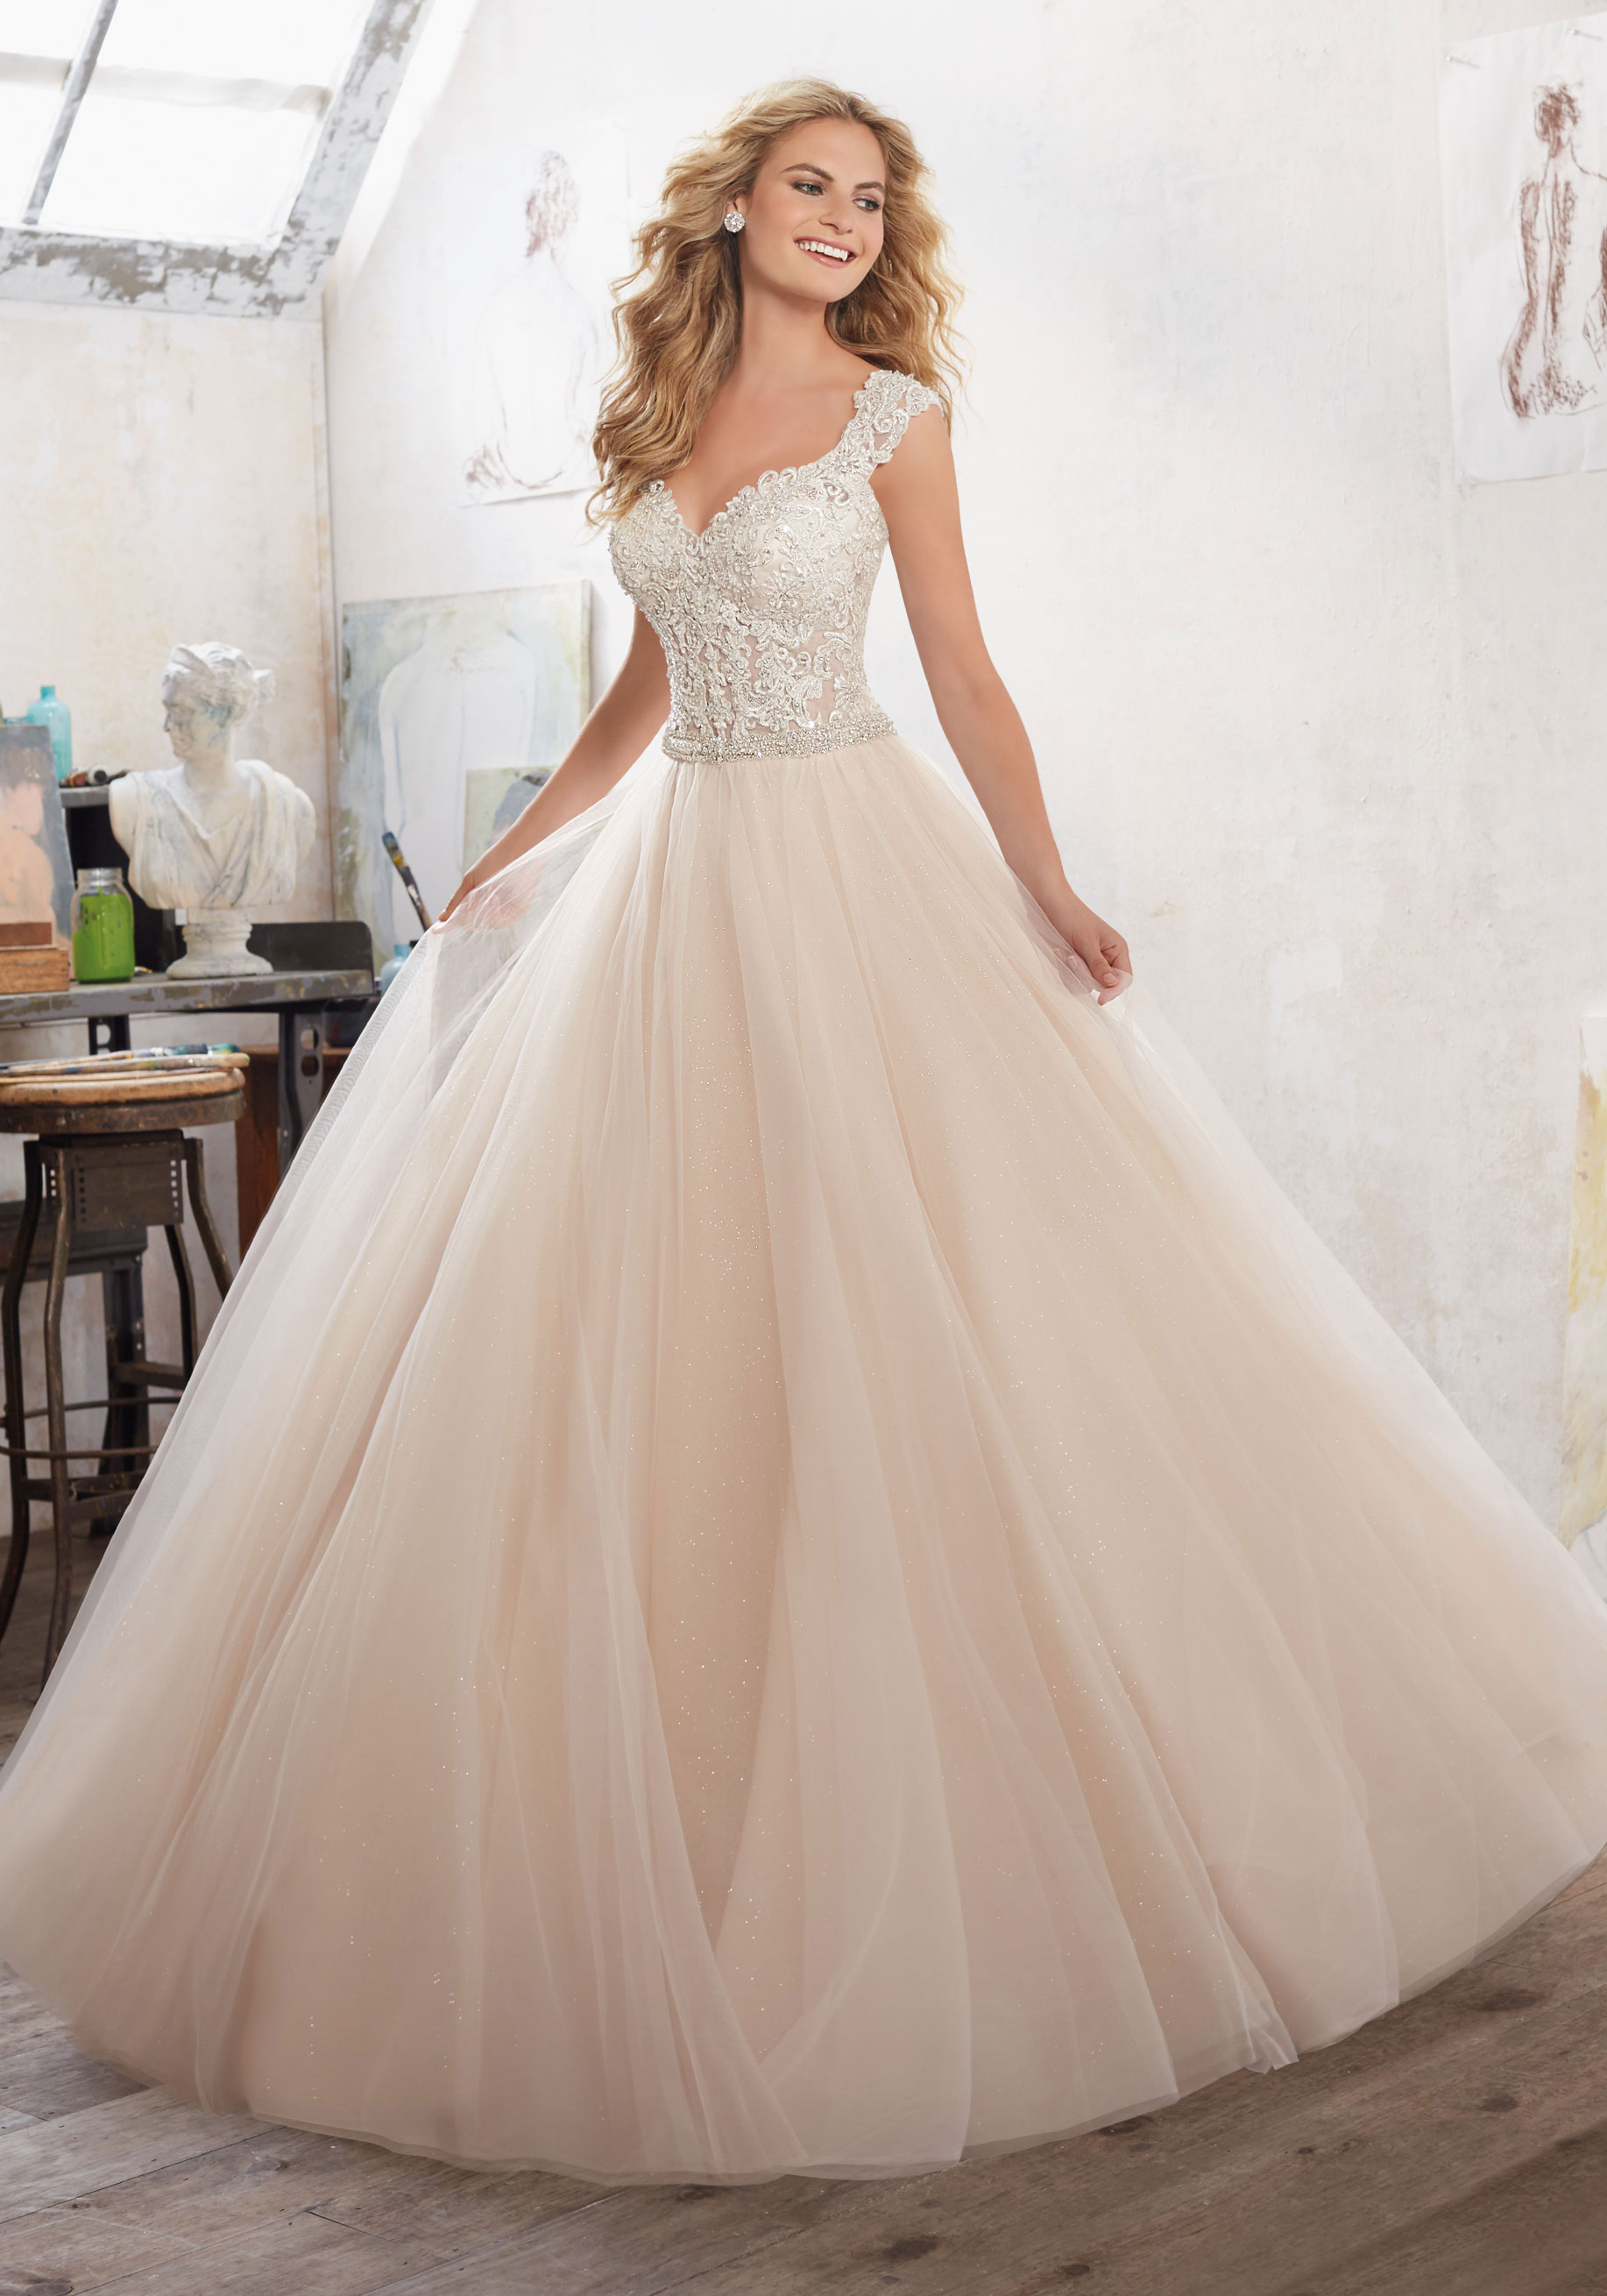 Wedding dress bridal shop gorey 8126 marigold ombrellifo Image collections